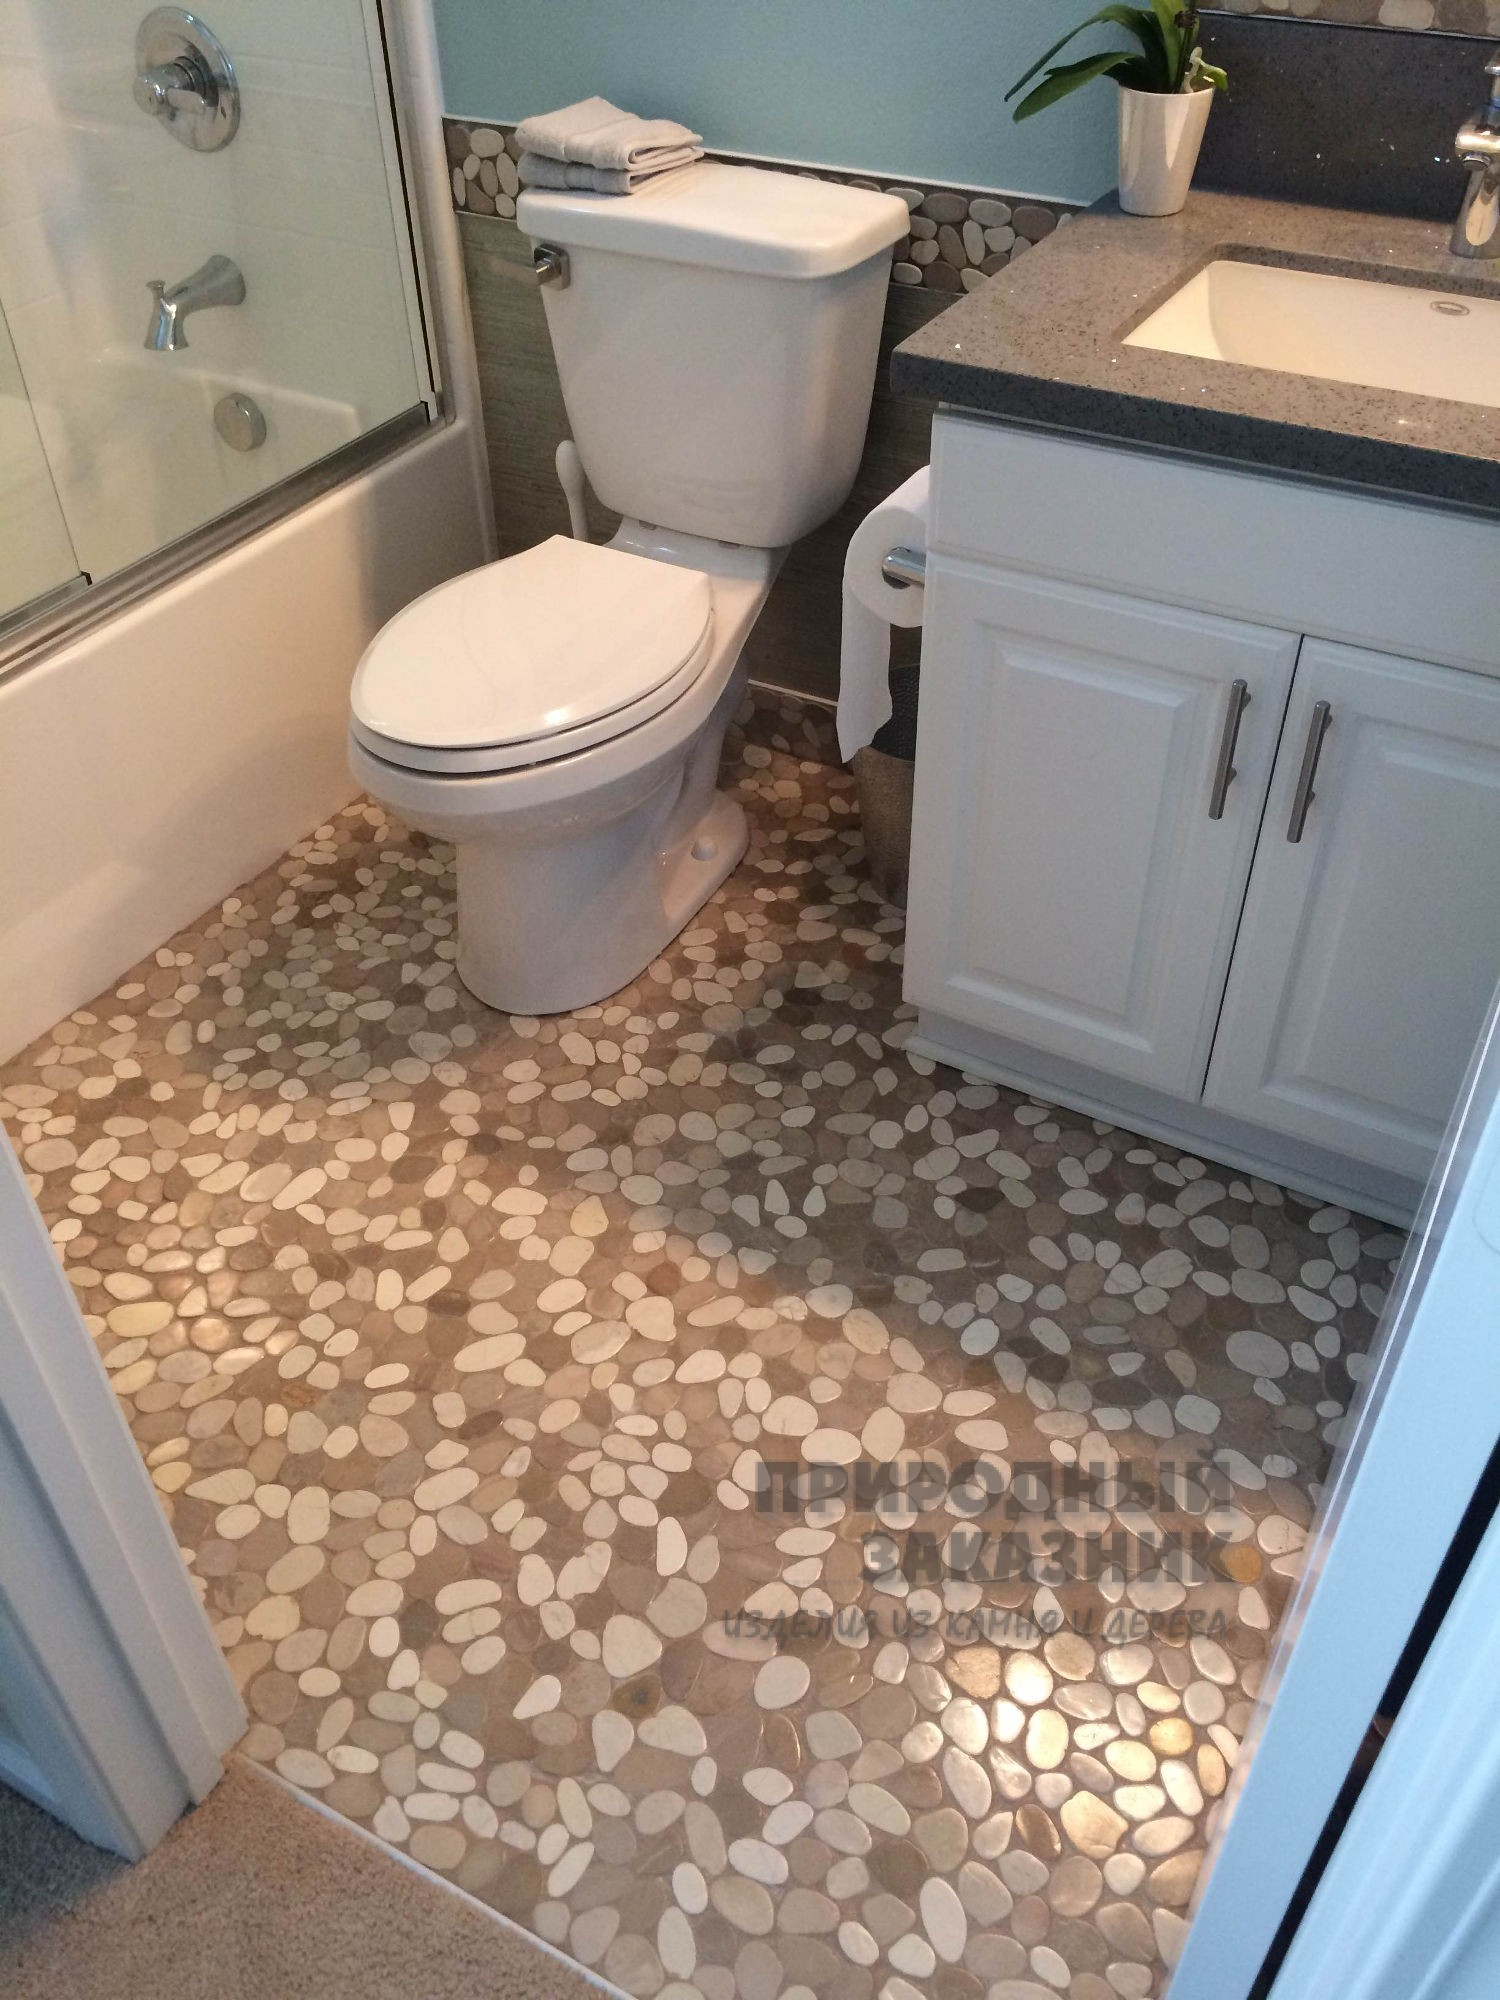 Pebble tile floor bathroom